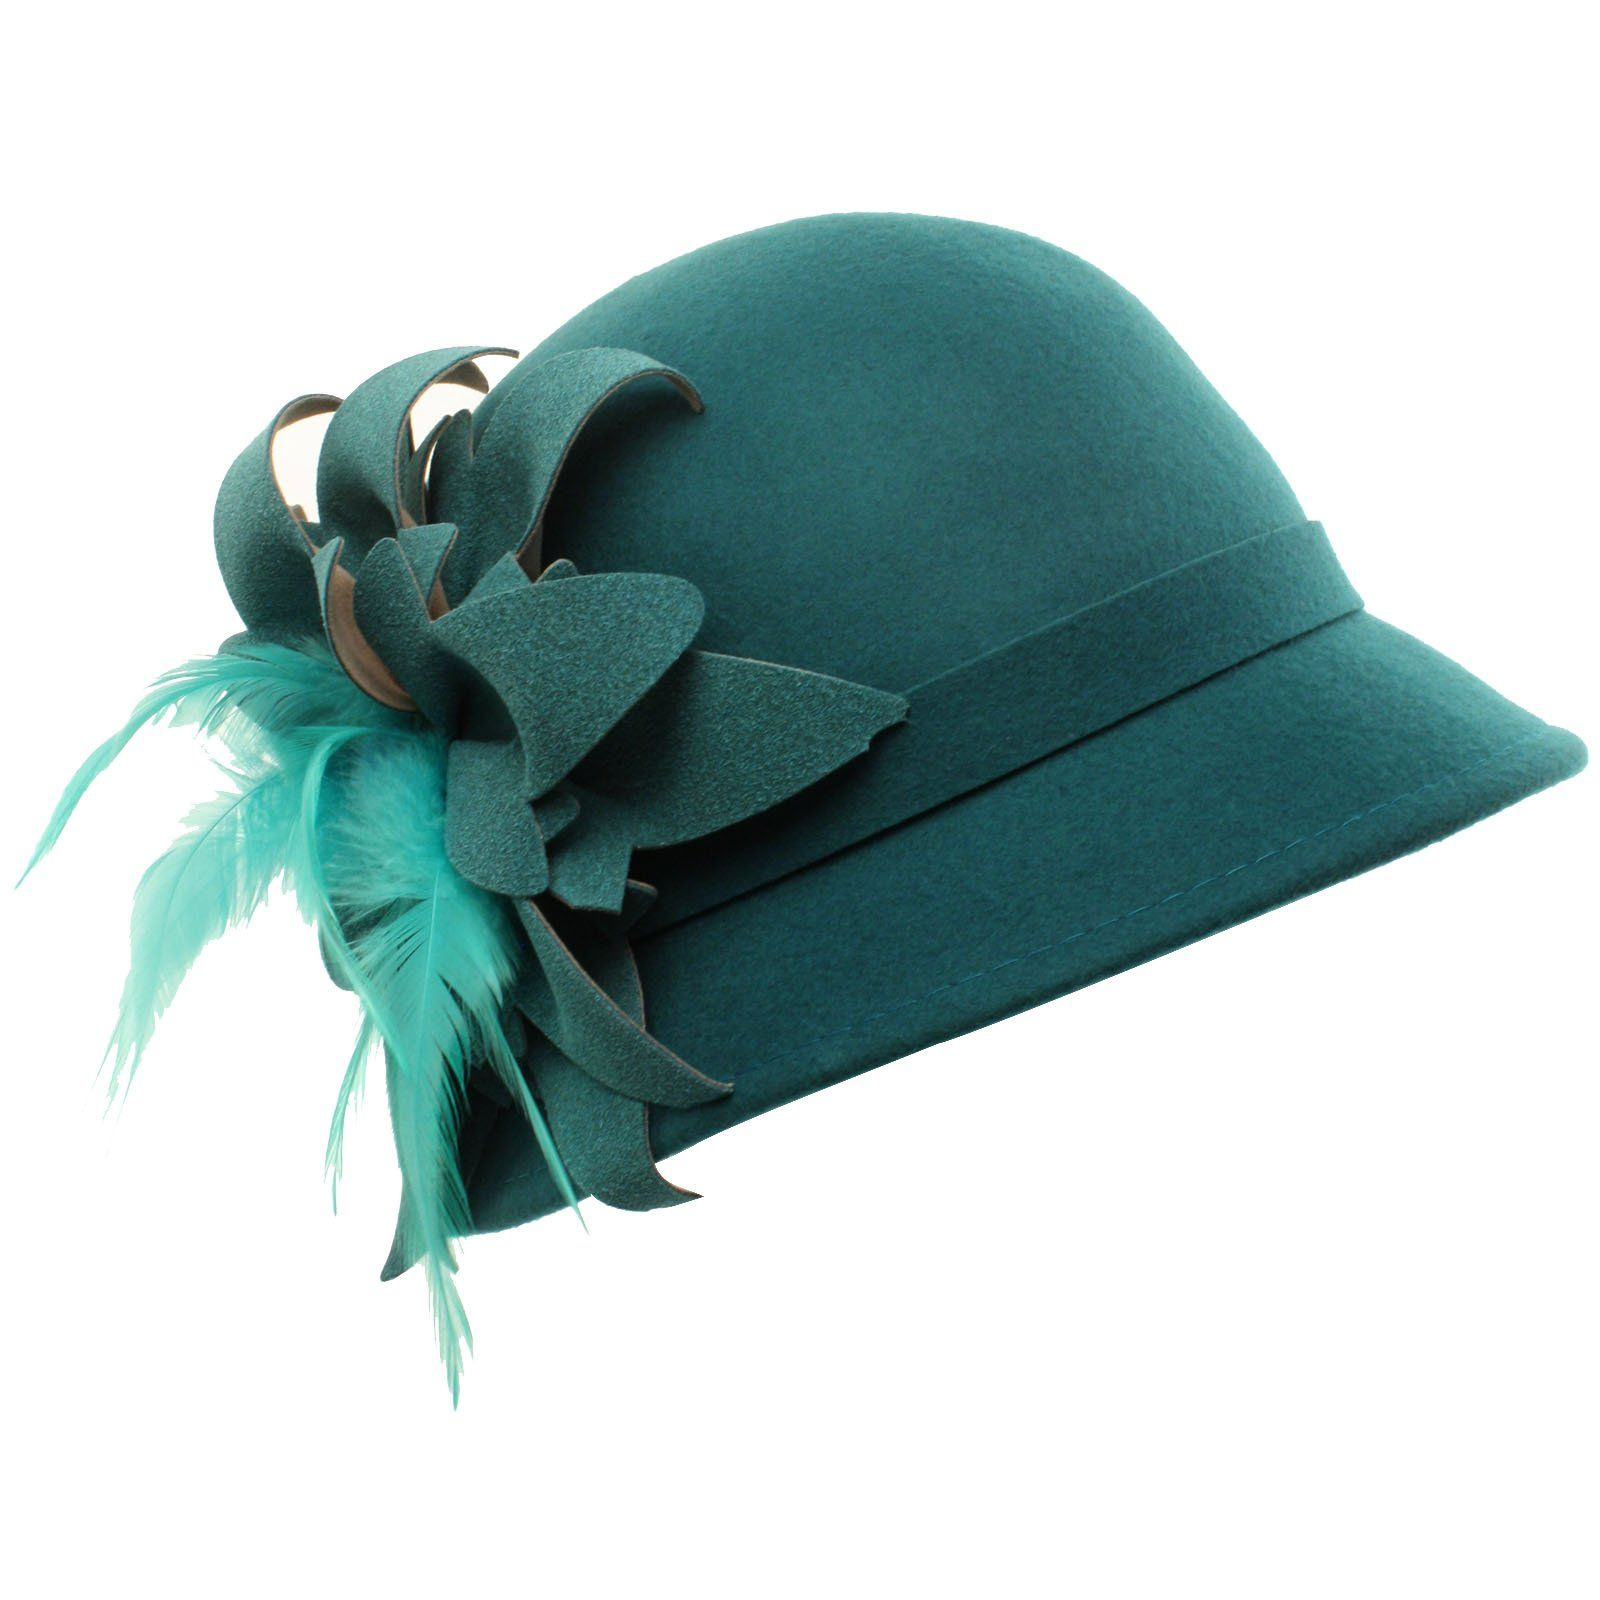 117335bb6f6 Winter Wool 1920s Classy Feathers Bunched Petal Floral Cloche Bucket Hat  Teal